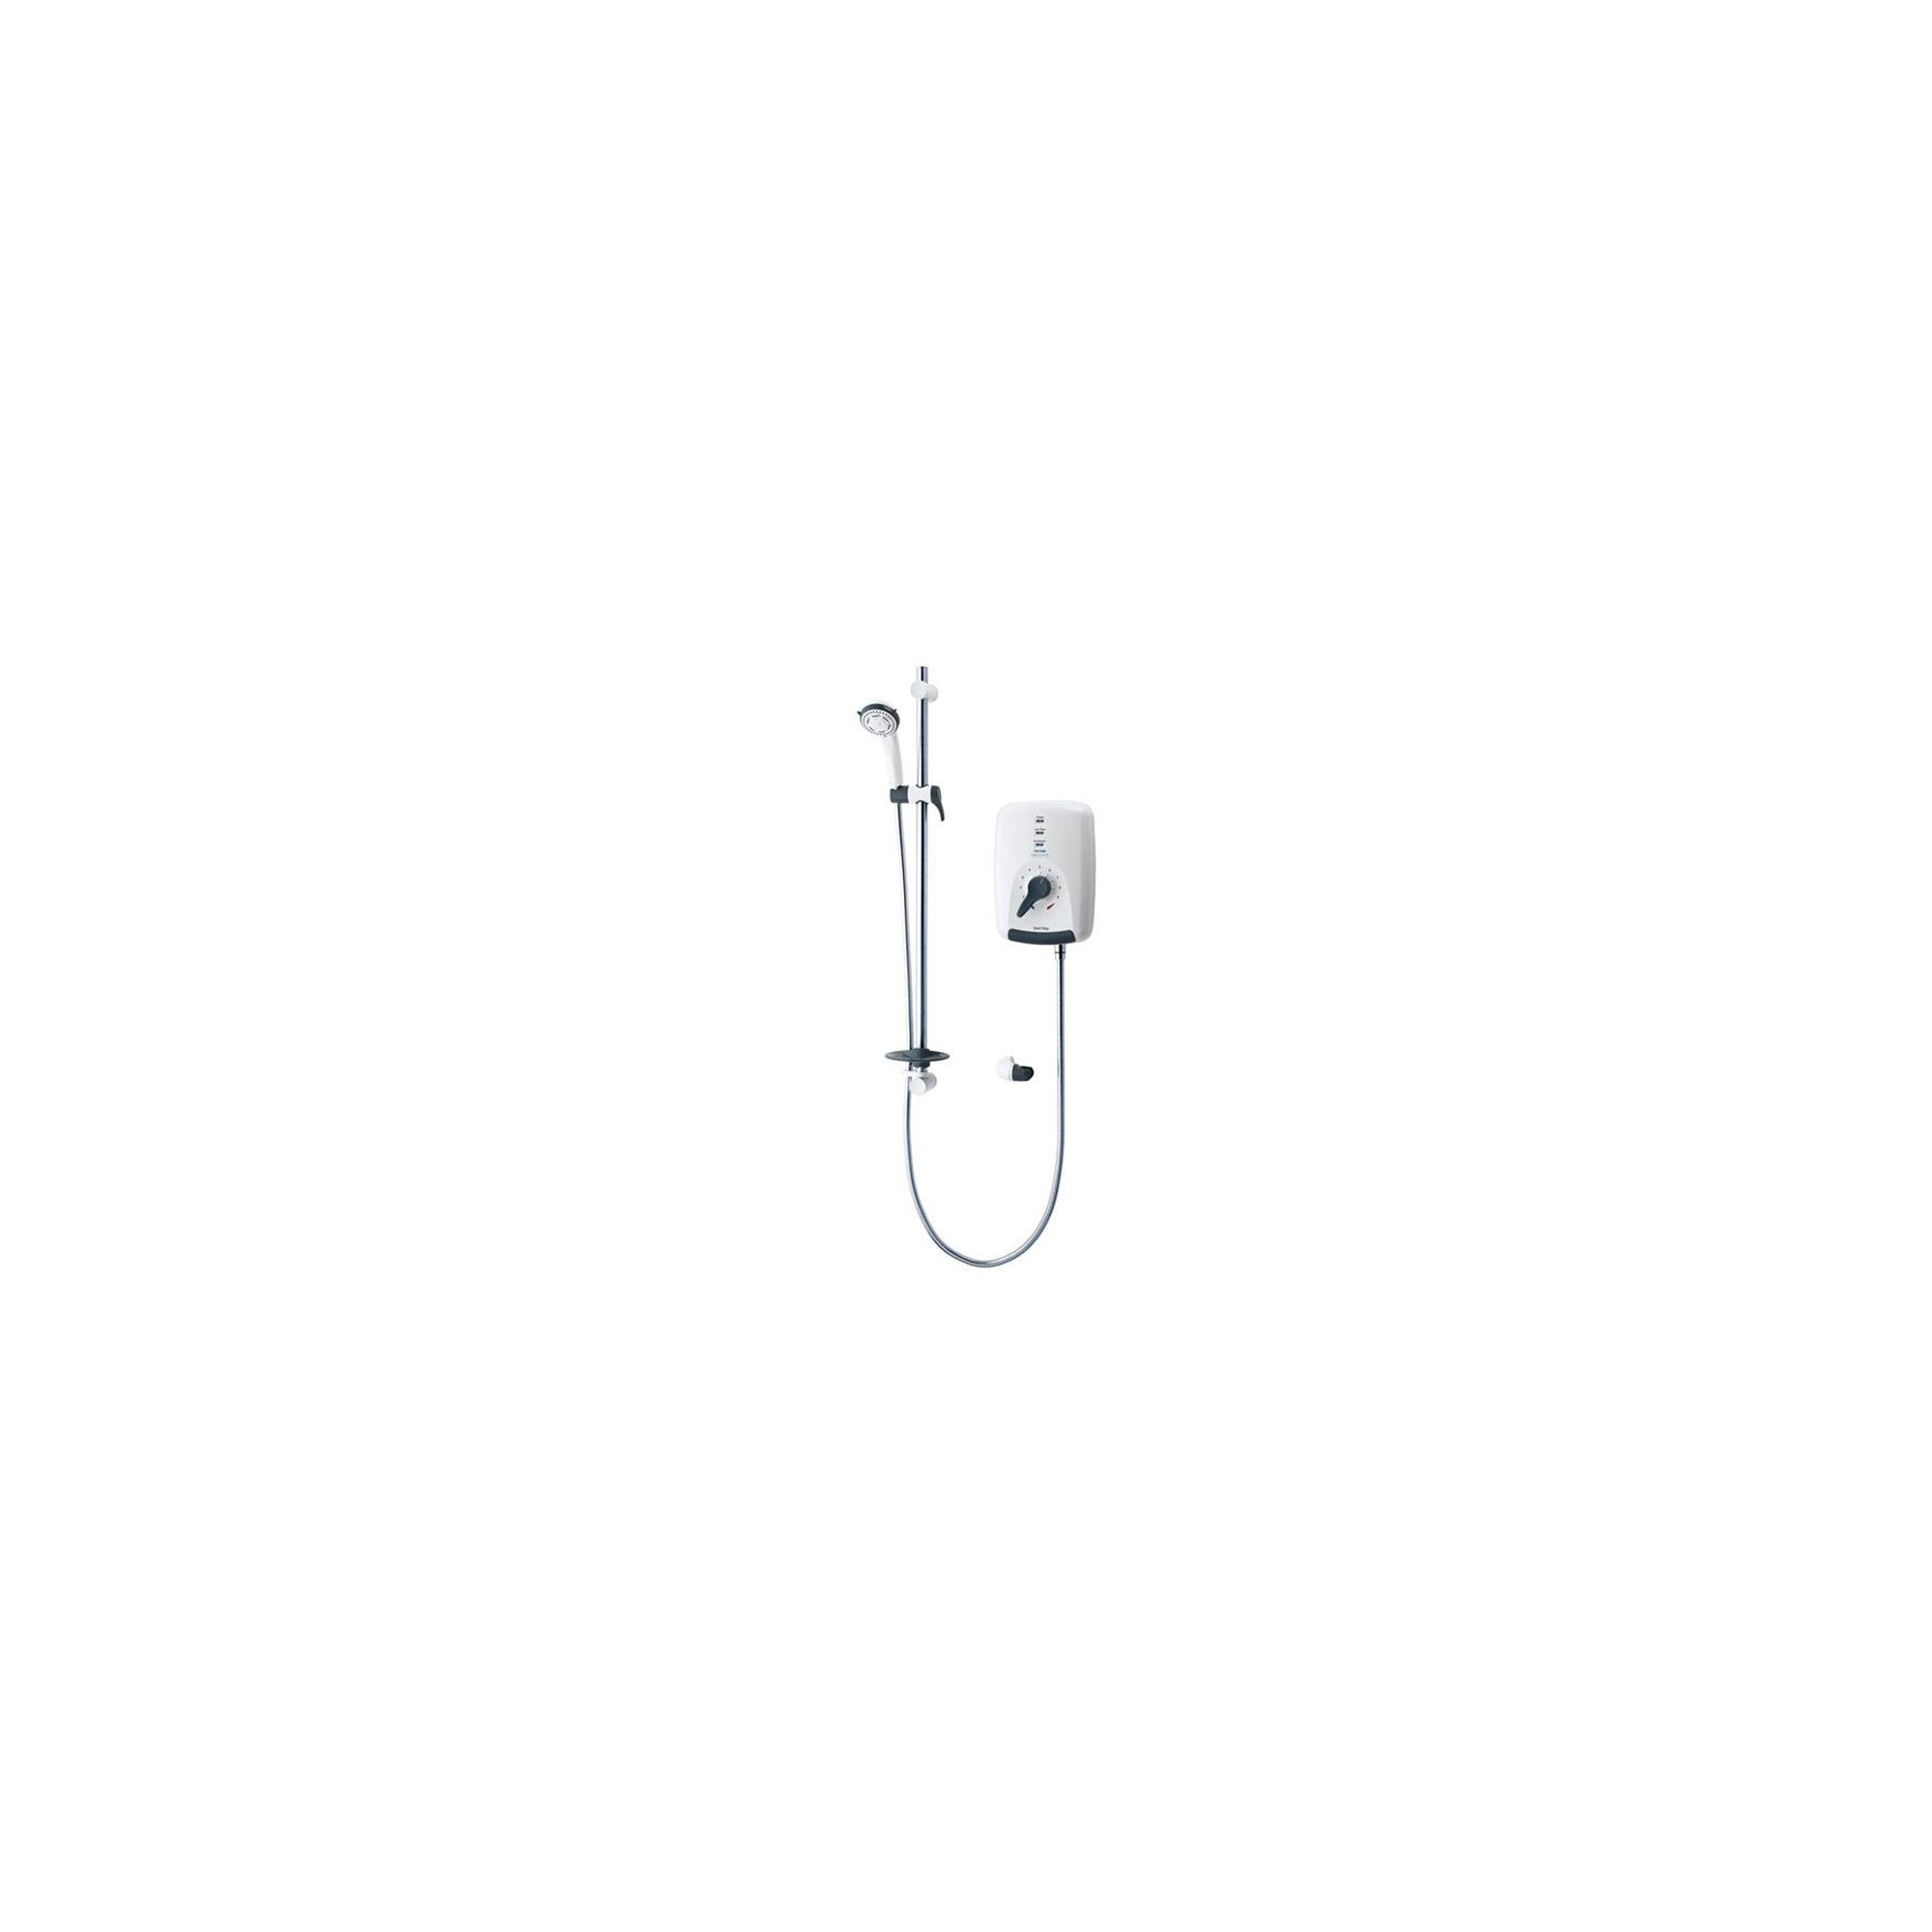 Triton Care Digilink Electric Shower 8.5kw White and Chrome at Tesco Direct